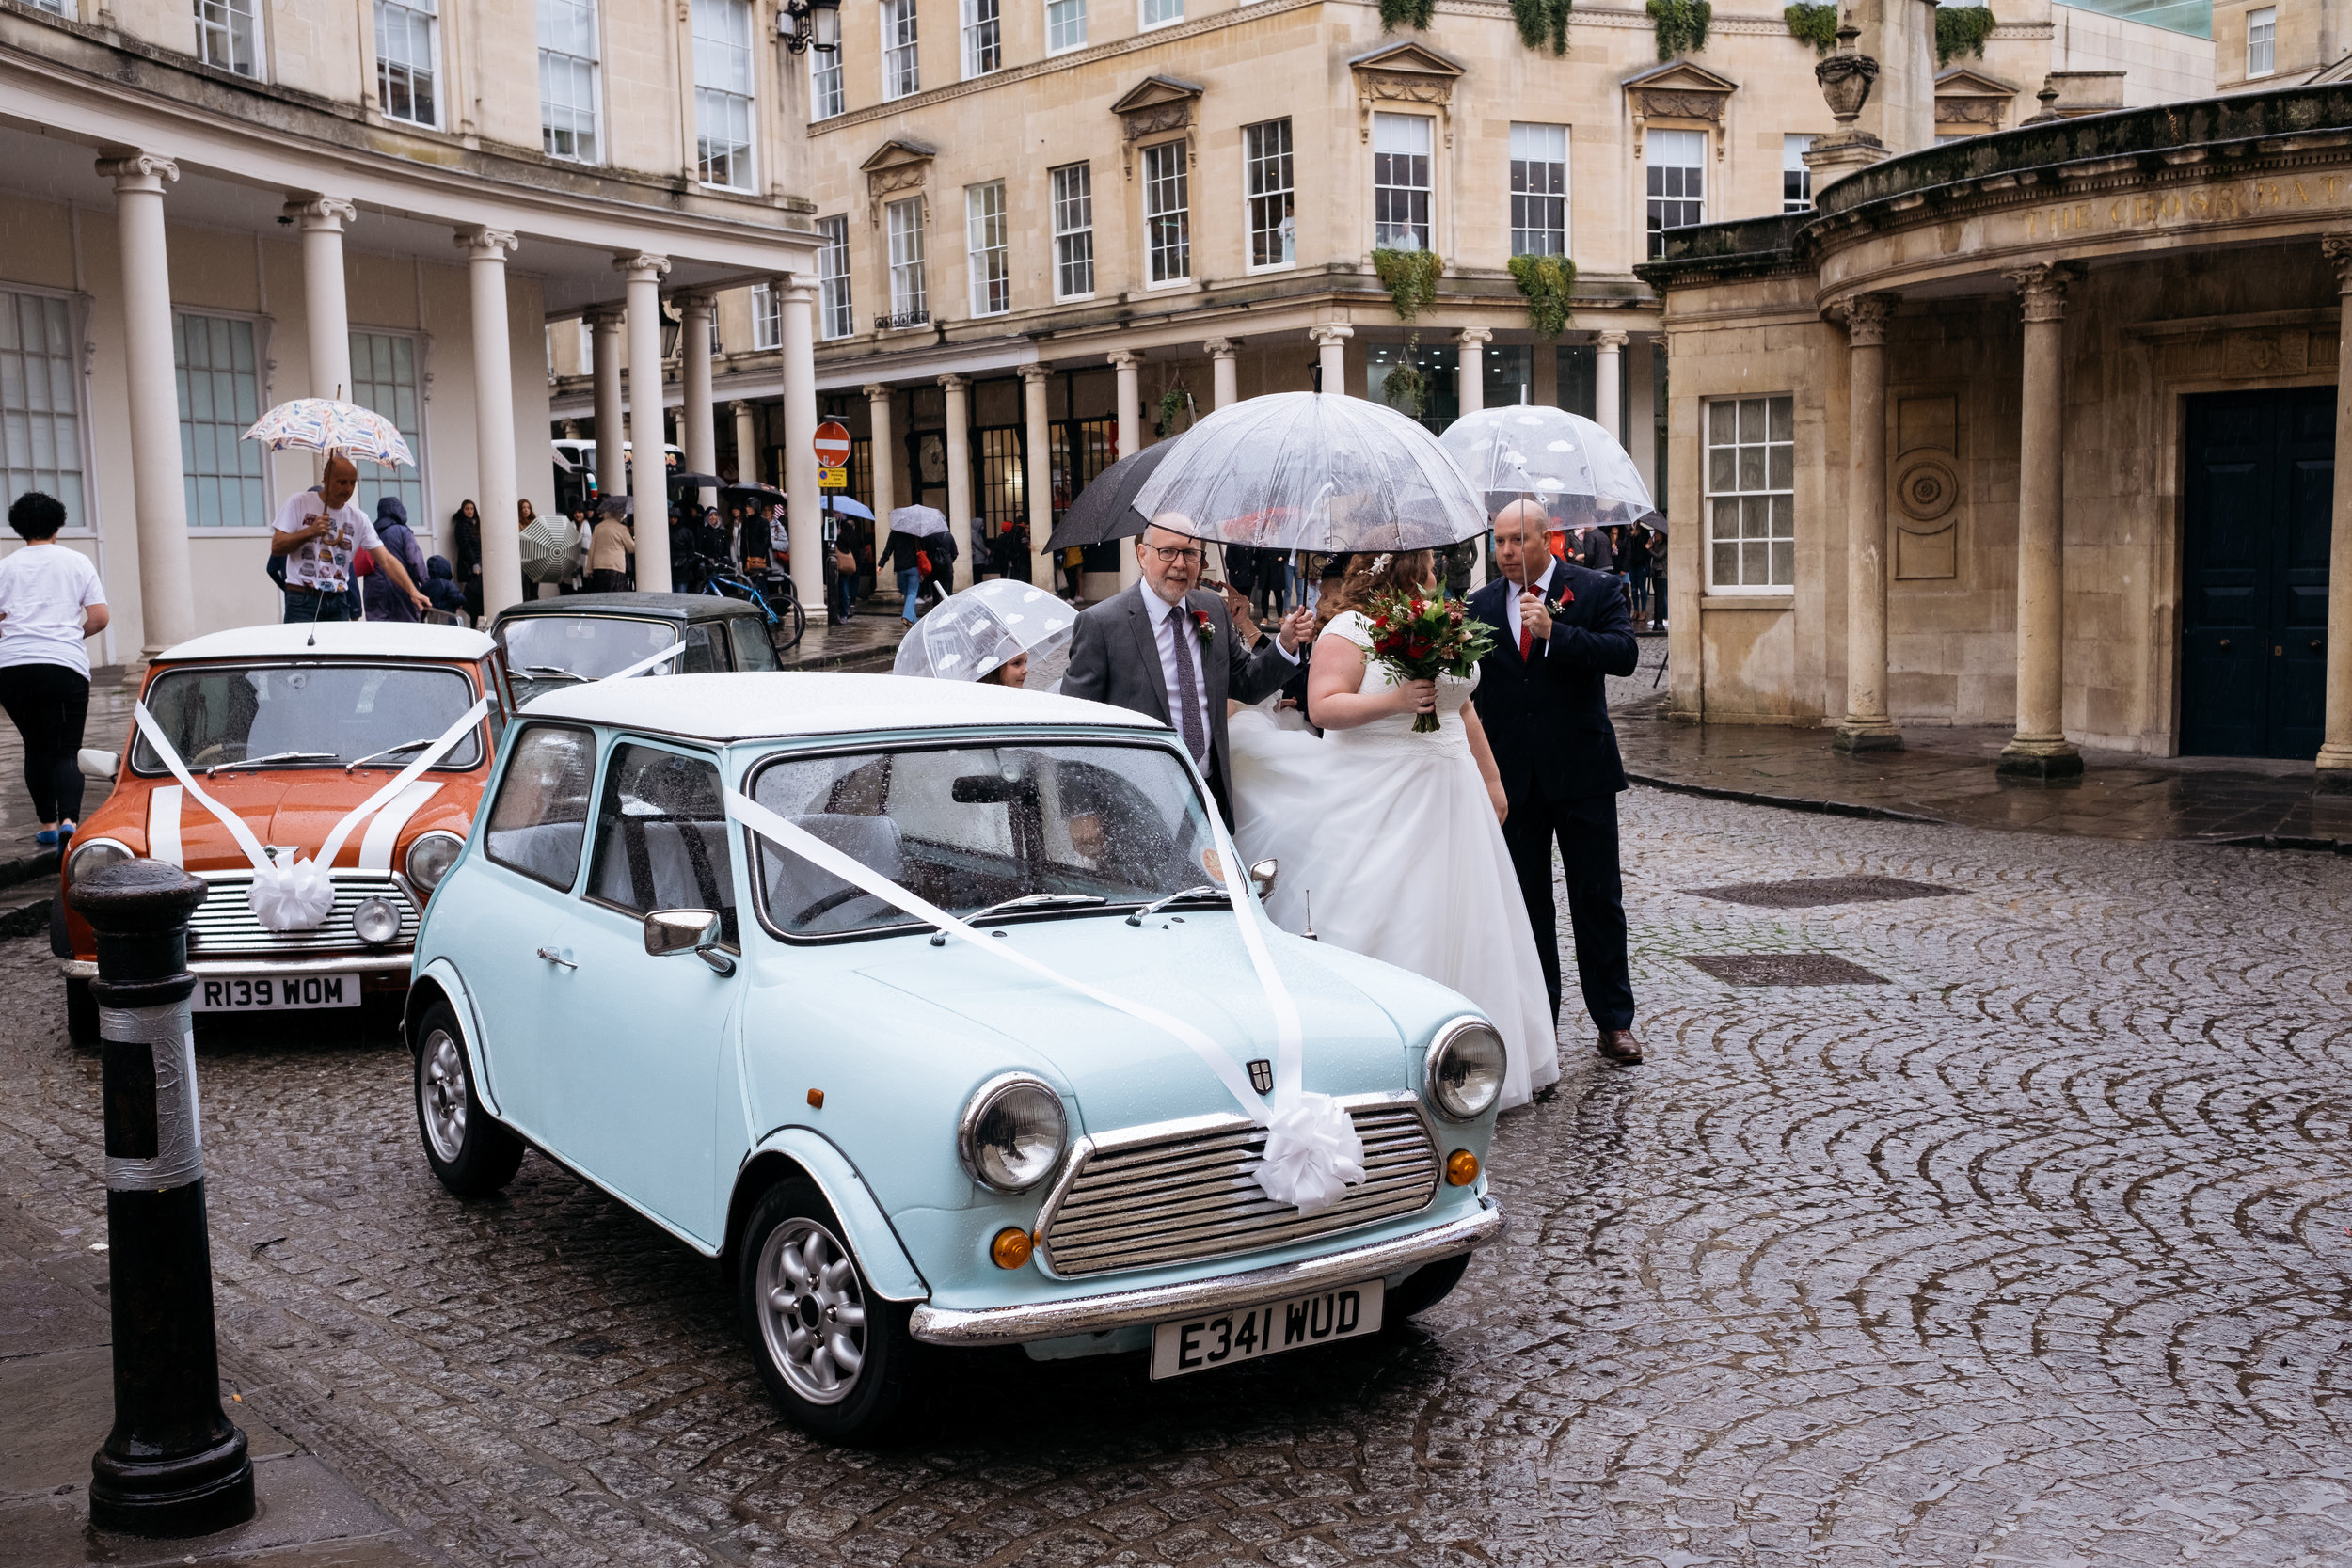 Classic mini wedding car at the Little Theatre in Bath